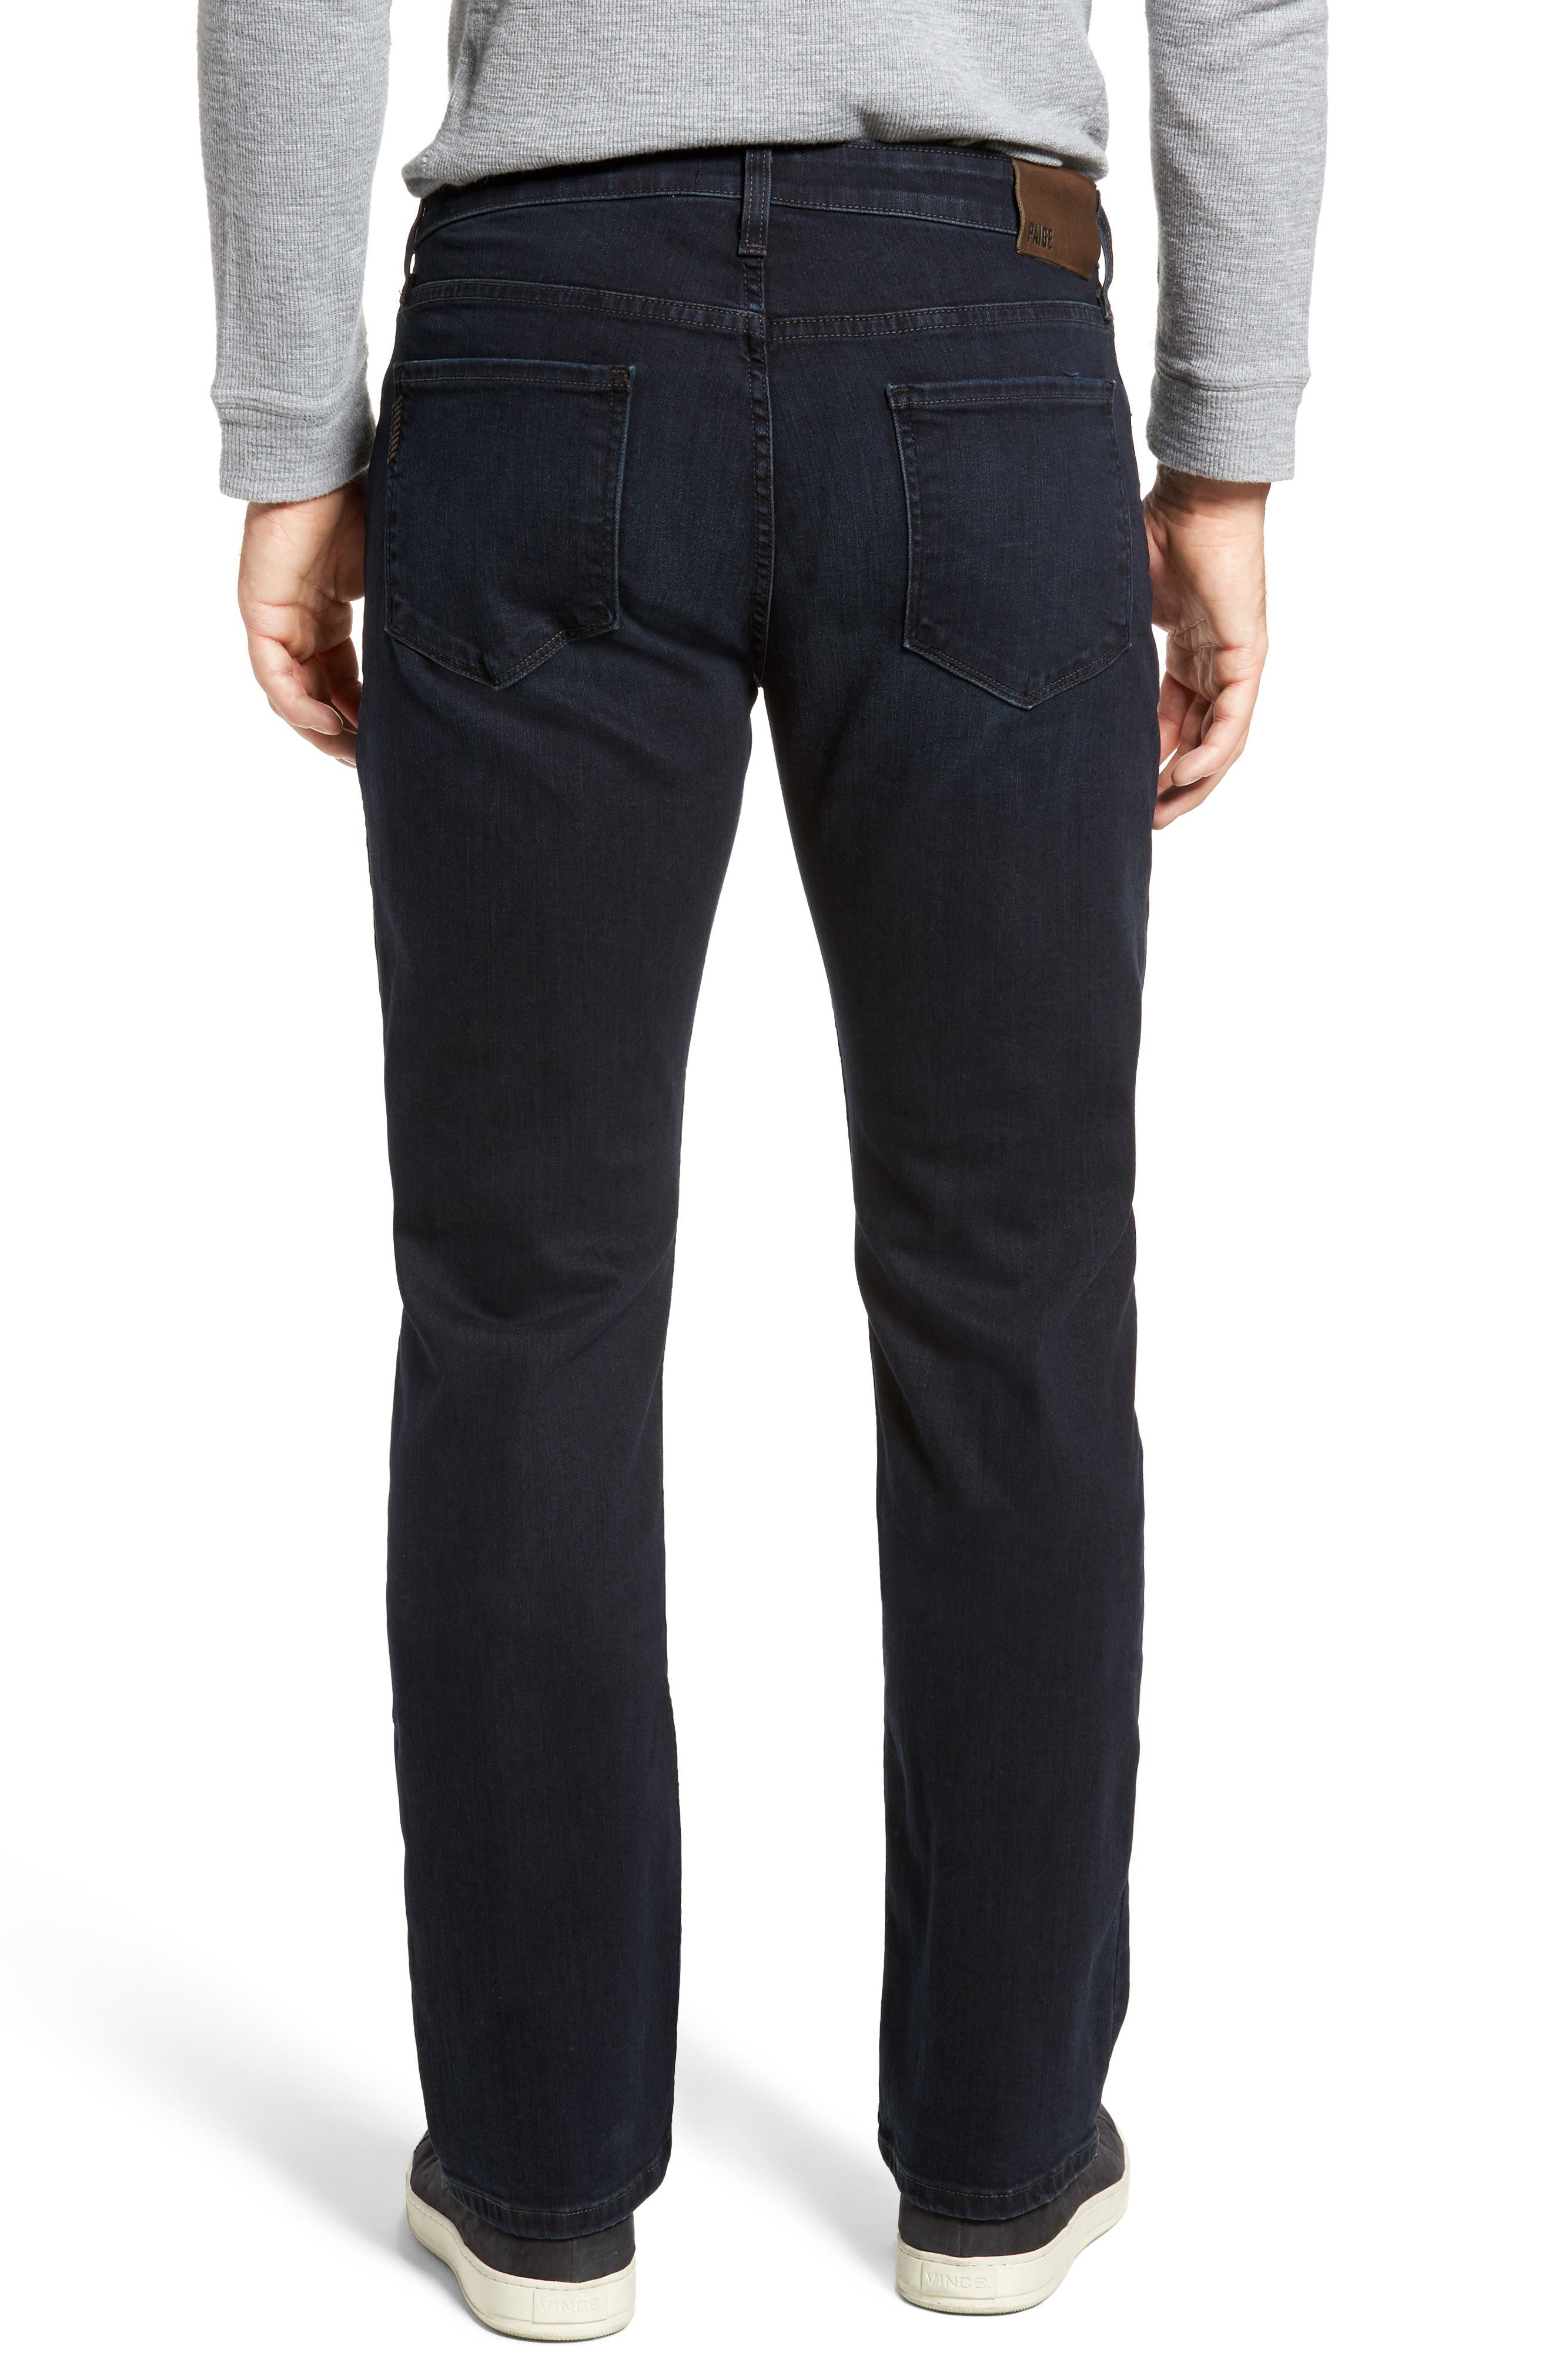 Doheny Relaxed Straight Leg Jeans,                             Alternate thumbnail 2, color,                             400